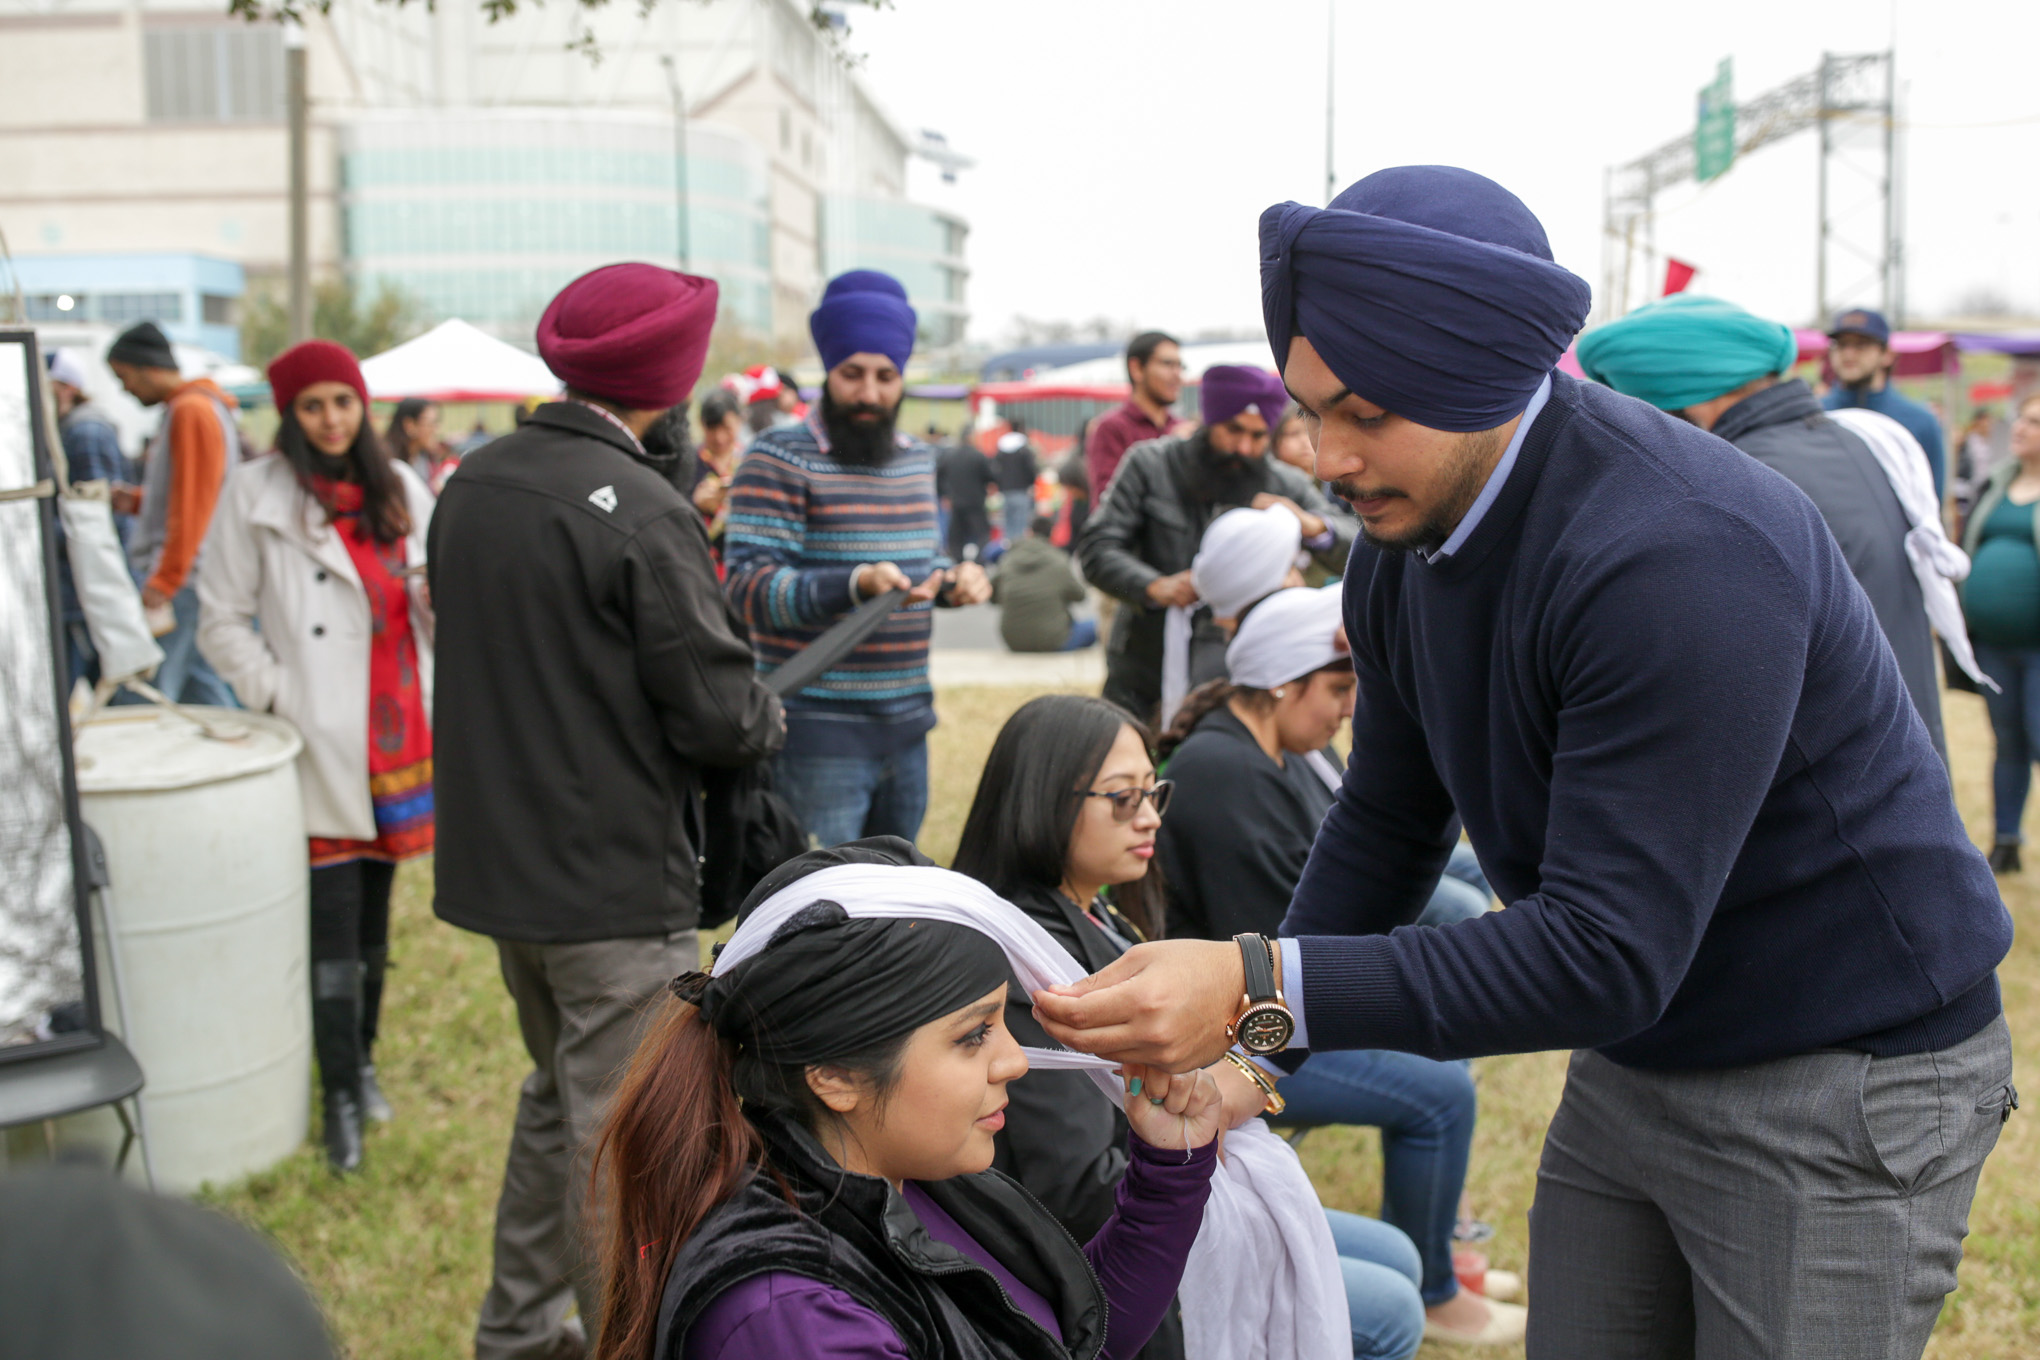 Amandeep (right) ties a turban around an attendee at the Sikh Dharamsal booth. The turbans were given and clothed at no charge and over two hundred were claimed.